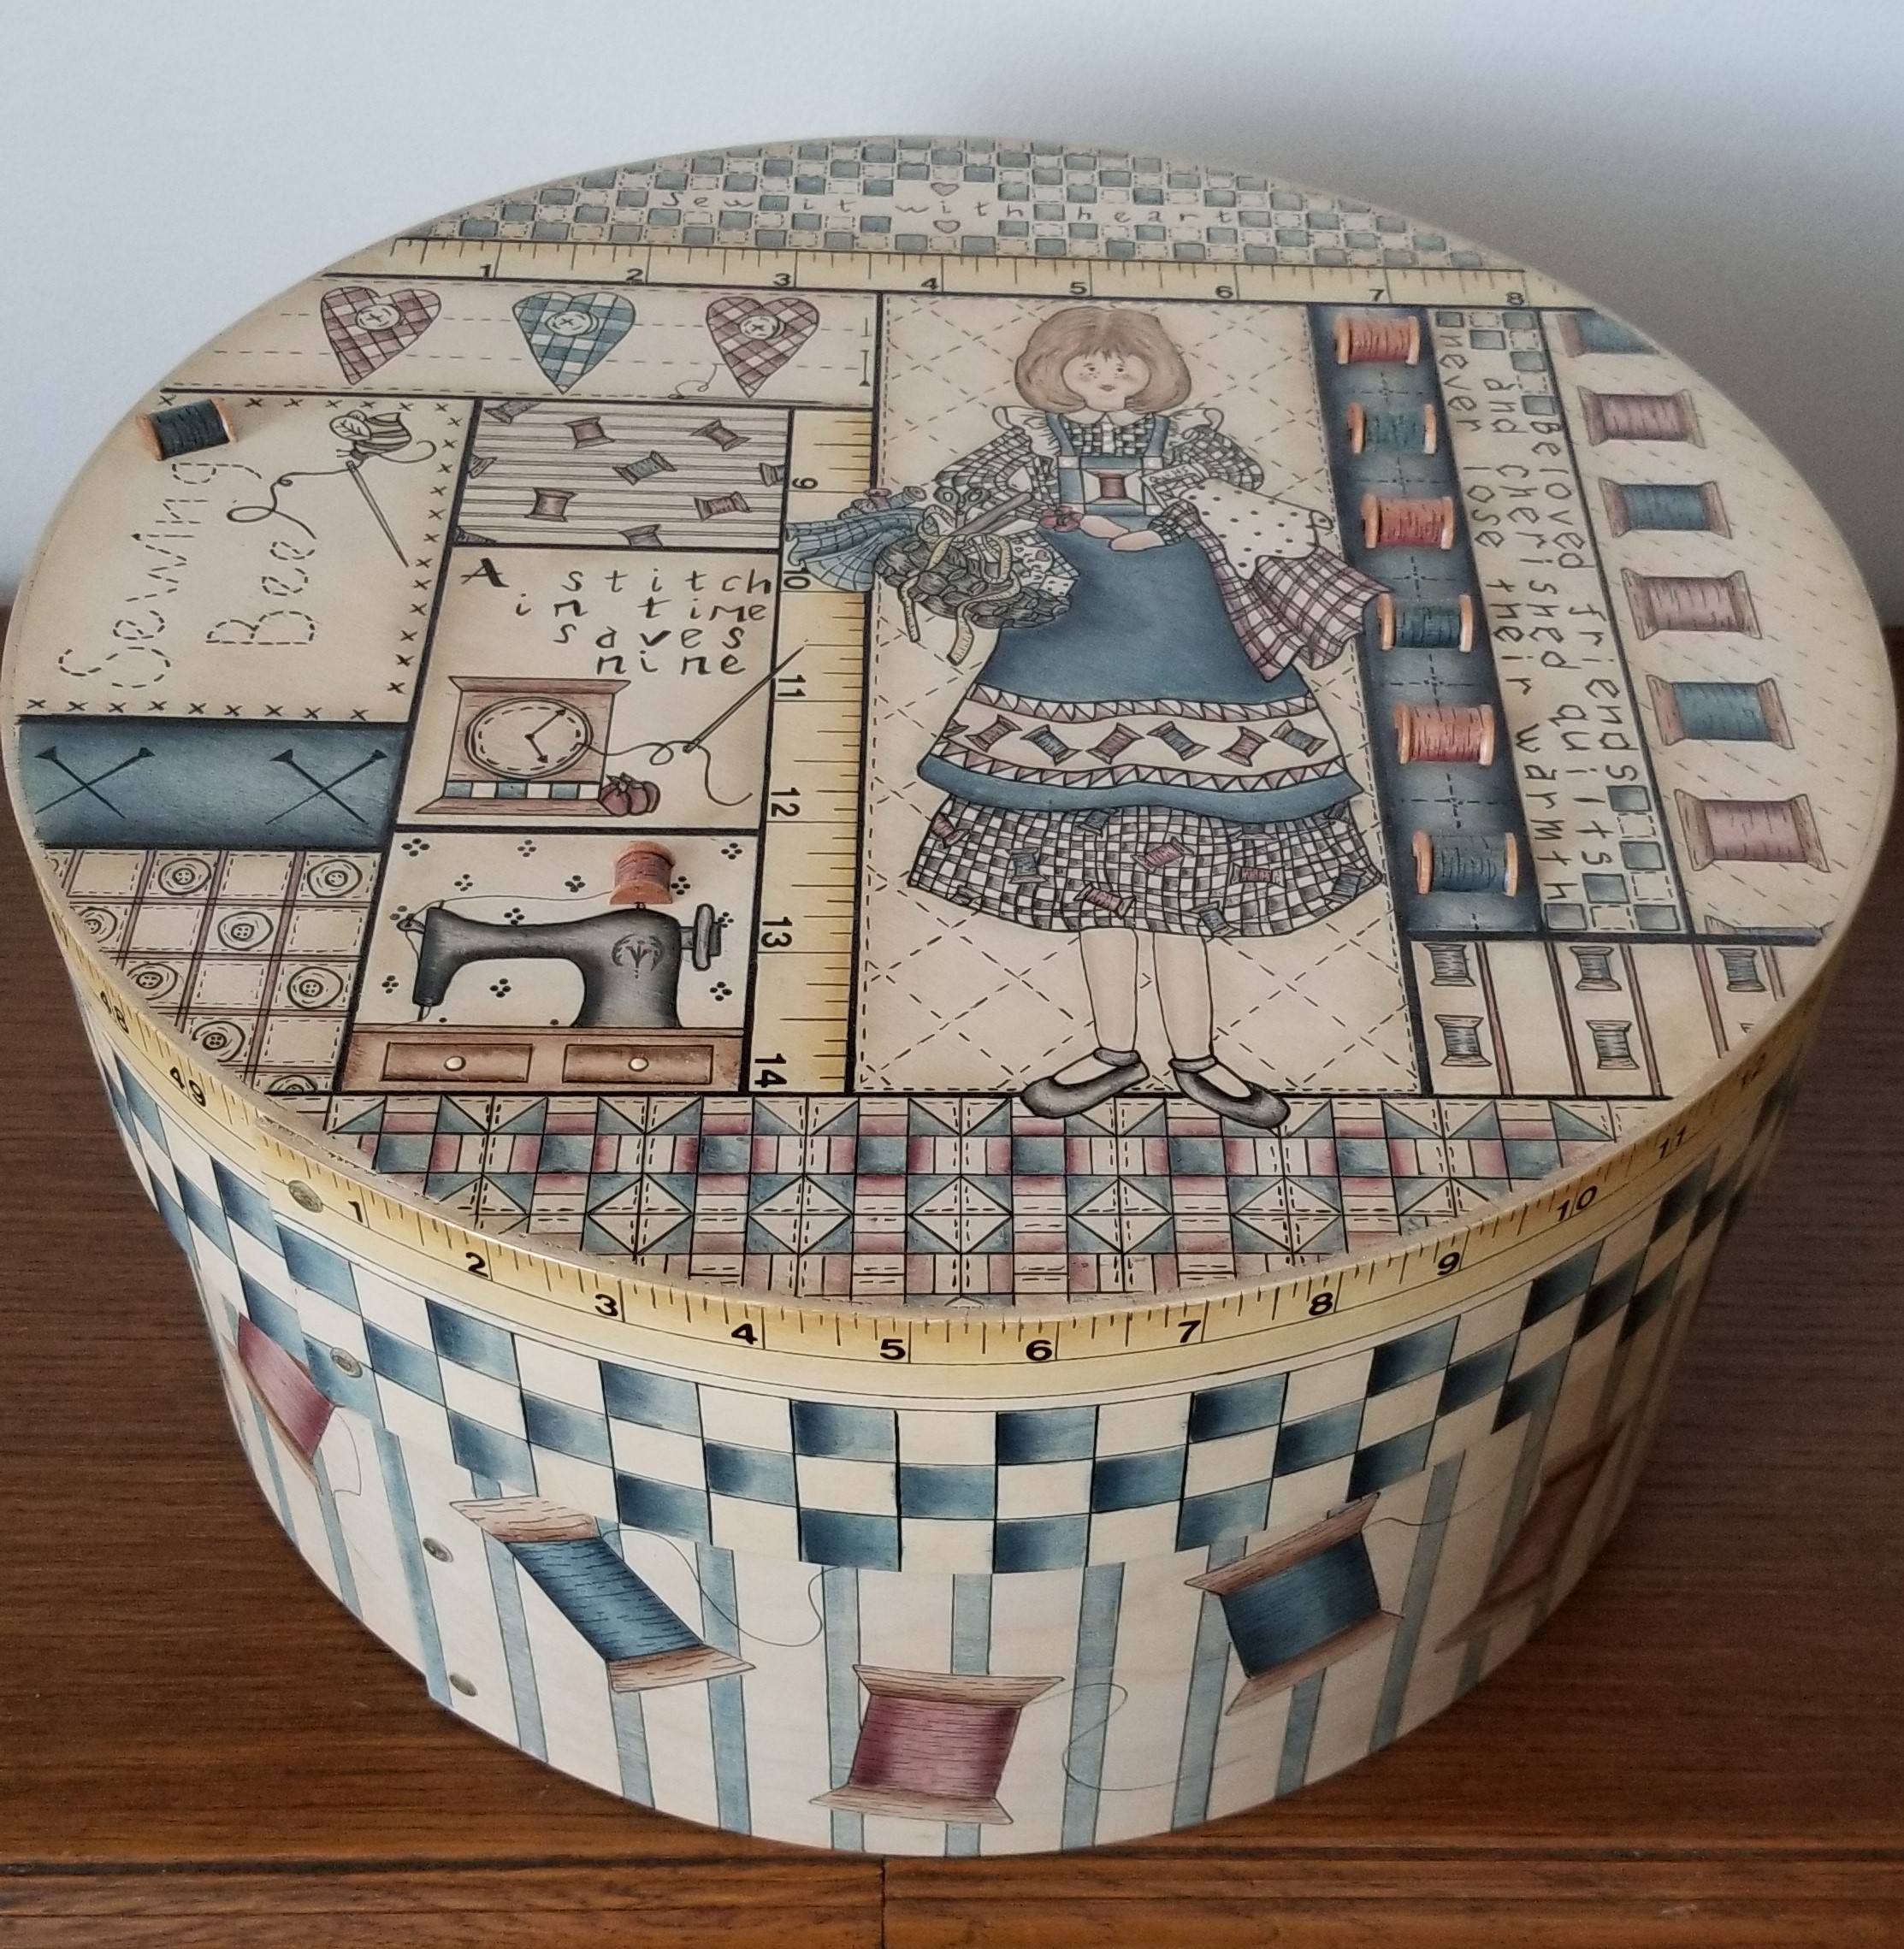 sewing box acrylic and ink on wood